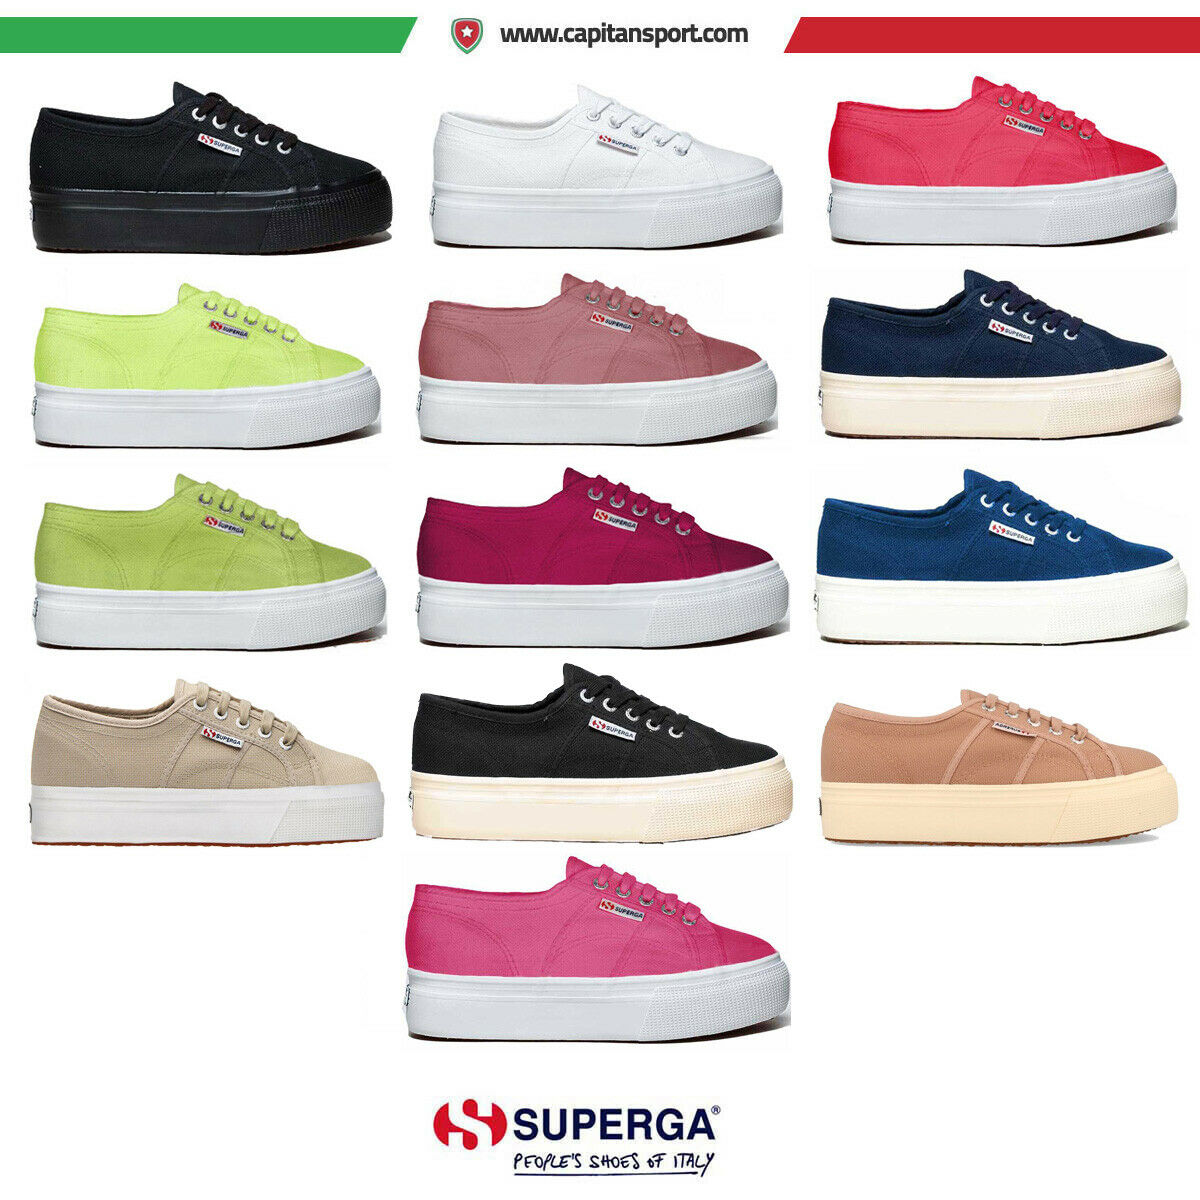 Superga 2790a cotu platform up and down scarpe casual art s0001l0 